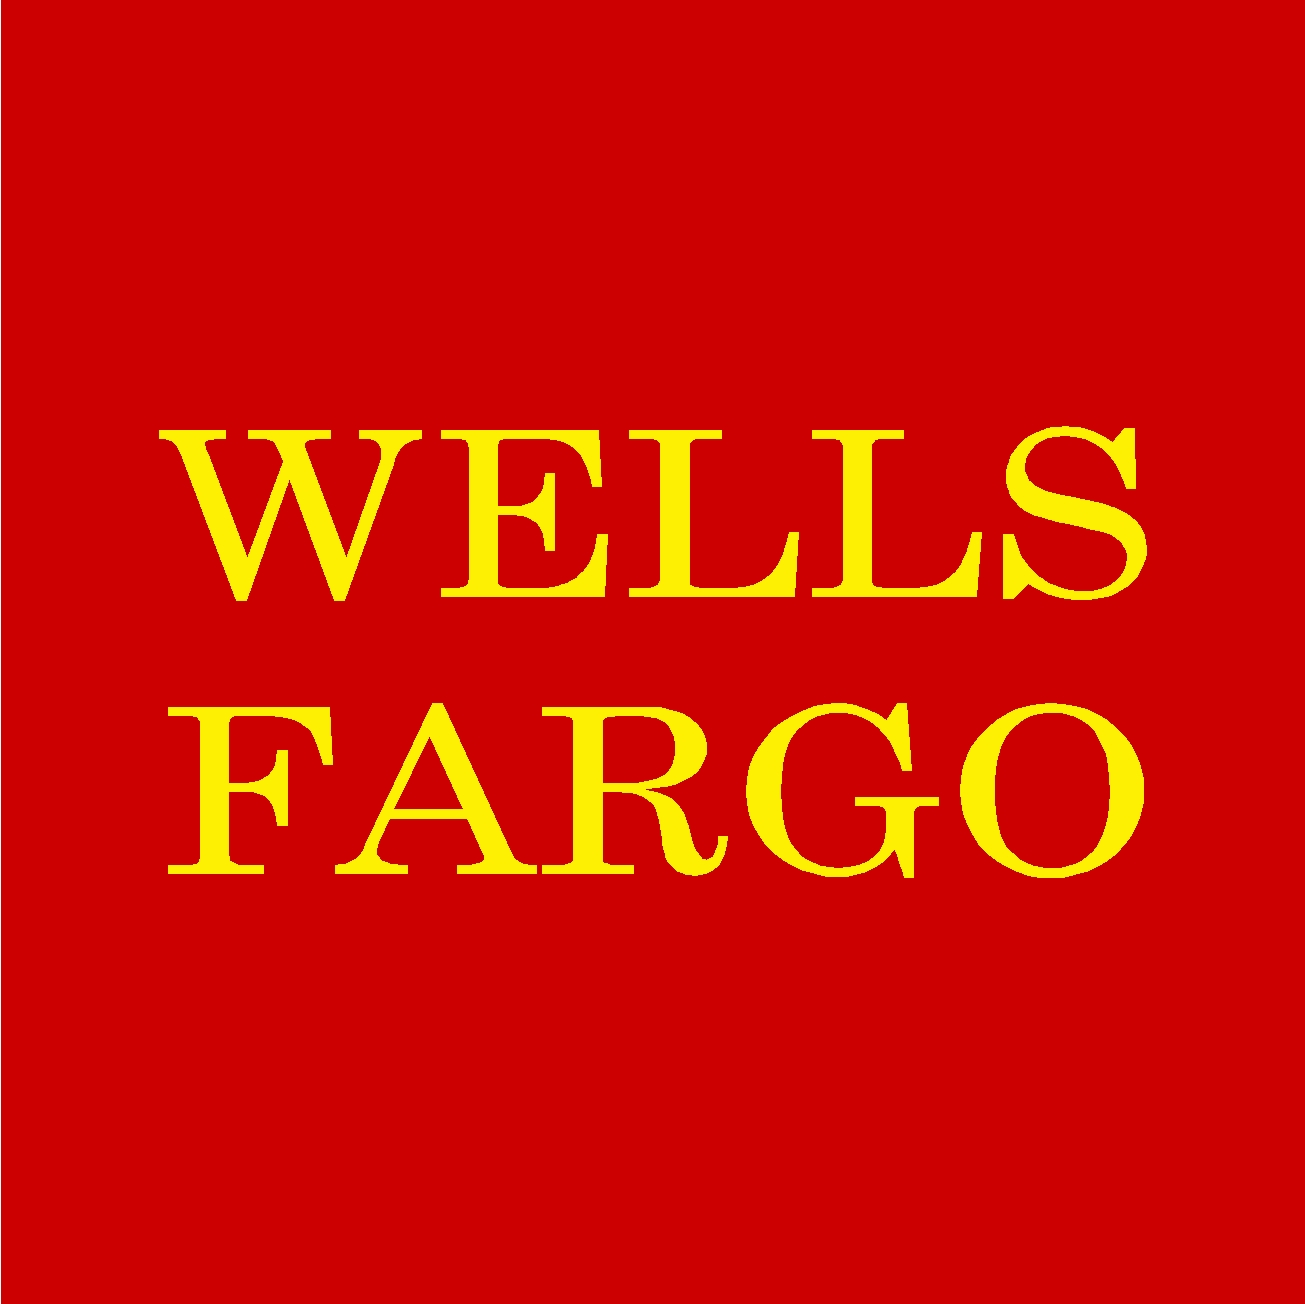 Wellsfargo Transguardian Develops Transportation Management Software That Insures And Protects Small Parcels In Transit The Company Automates